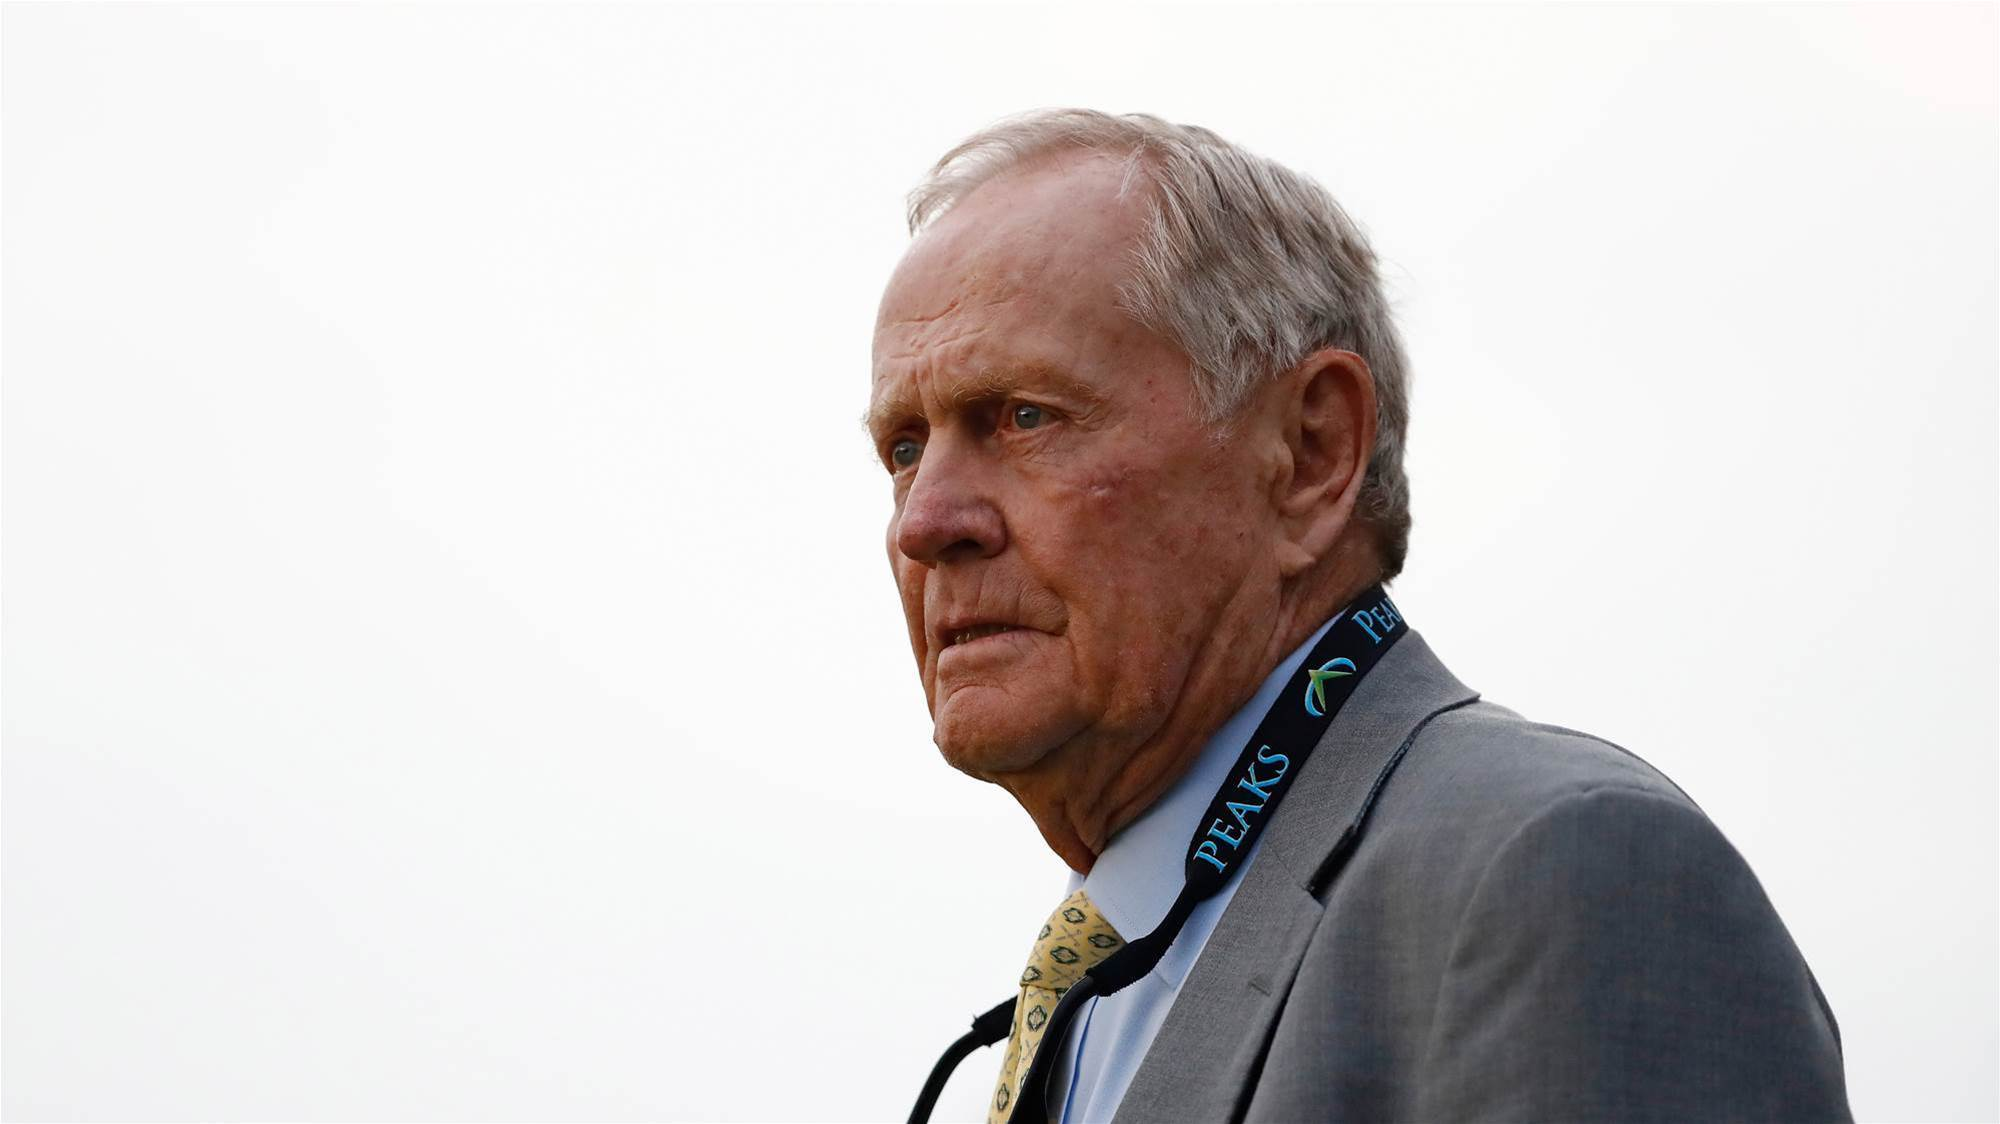 Nicklaus cuts workload to focus on family